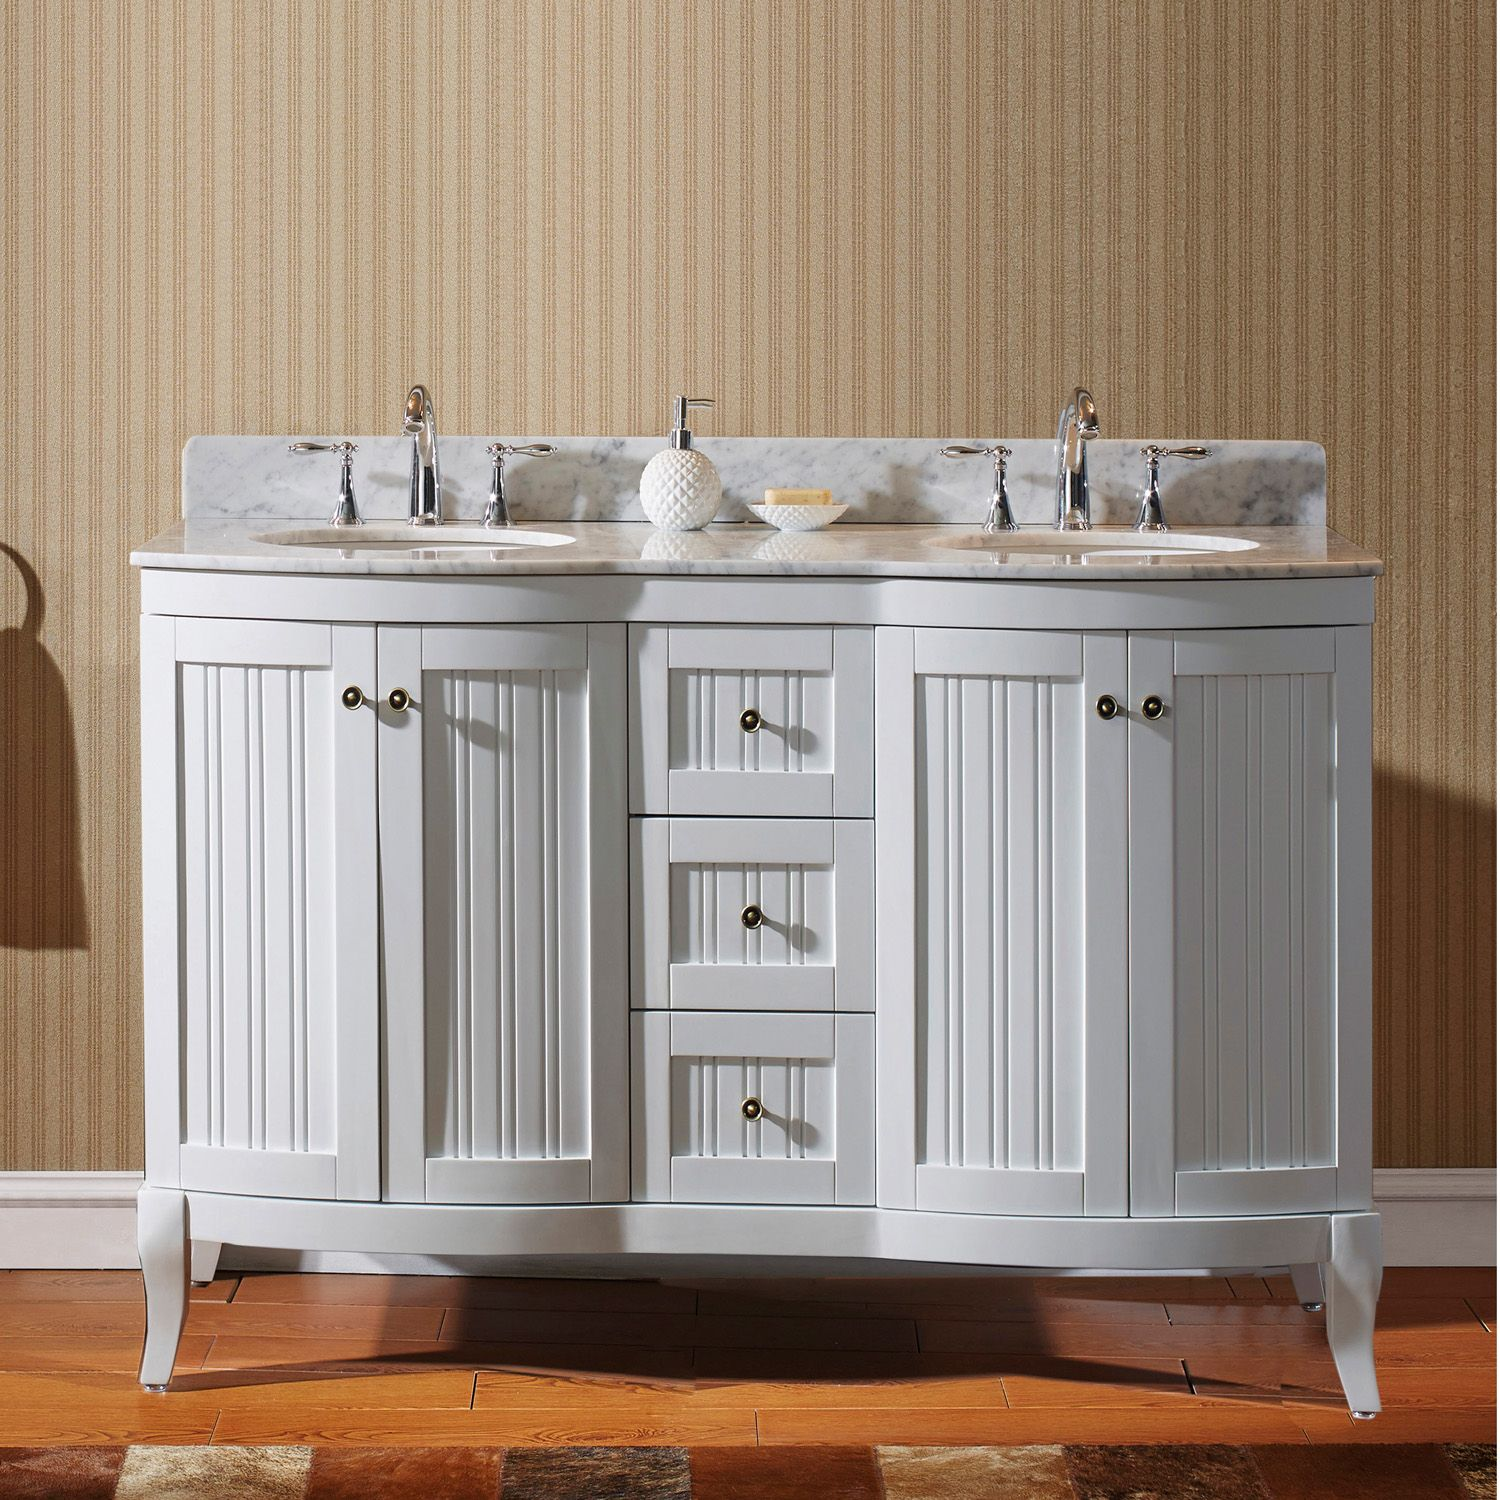 khaleesi 60 ed 52060 wmro wh nm double bathroom vanity in white with marble top and round sink